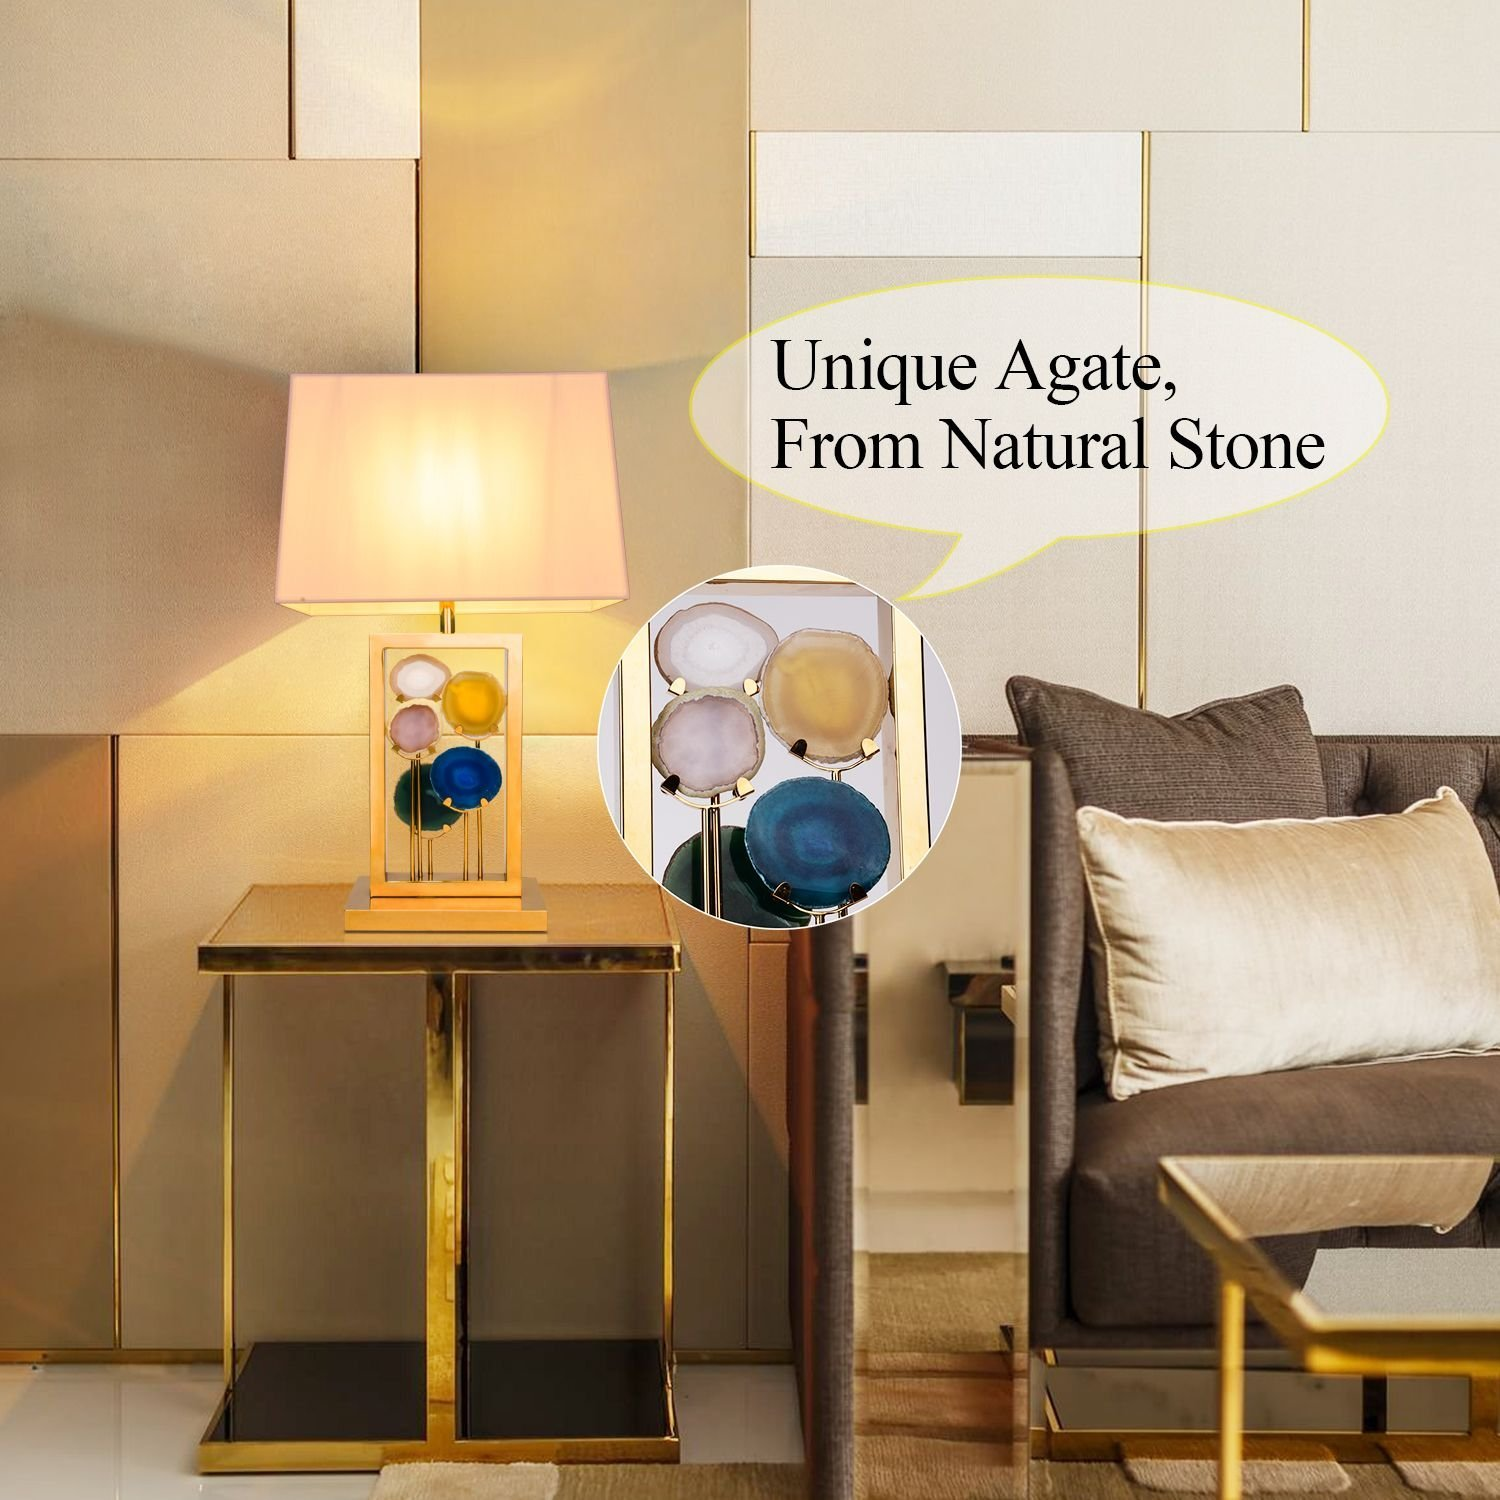 Side Table Lamp Brlighitng Unique Designed Room Lamp in Luxury Agate Pieces Gold Base for Bedside Lamp Living Room Office Decor